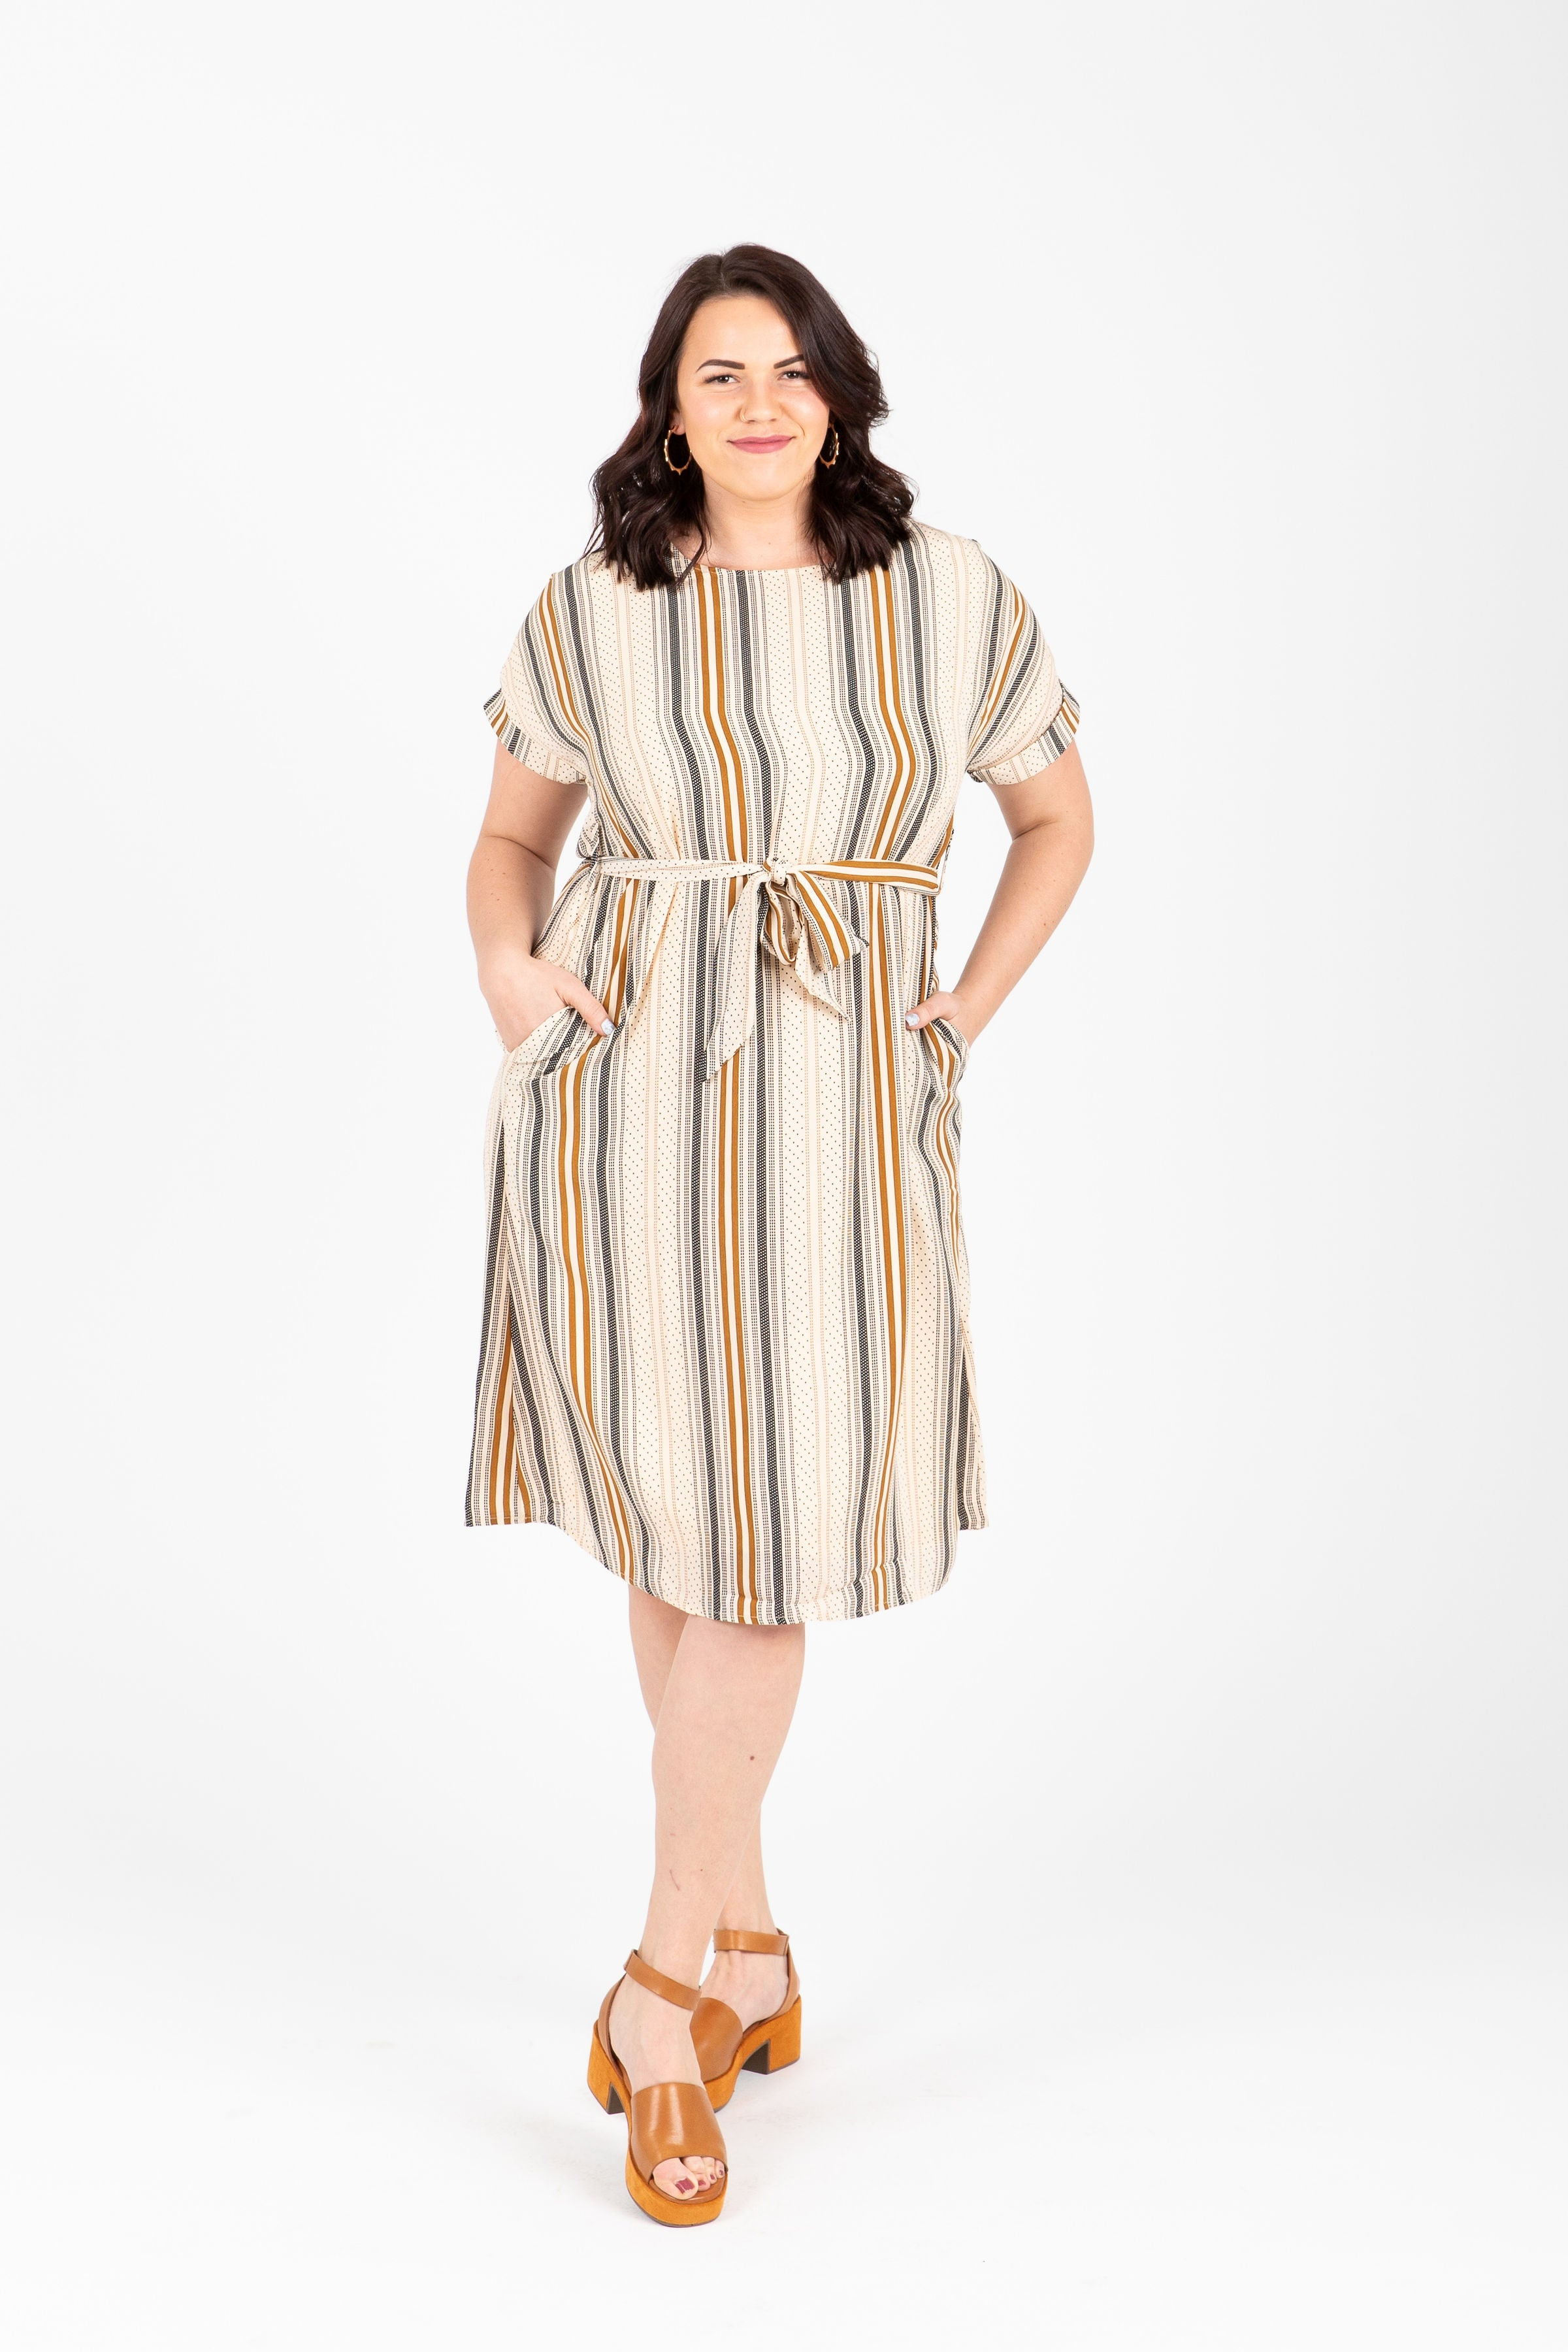 Piper & Scoot: The Nicole Striped Tie Around Shift Dress in Multi